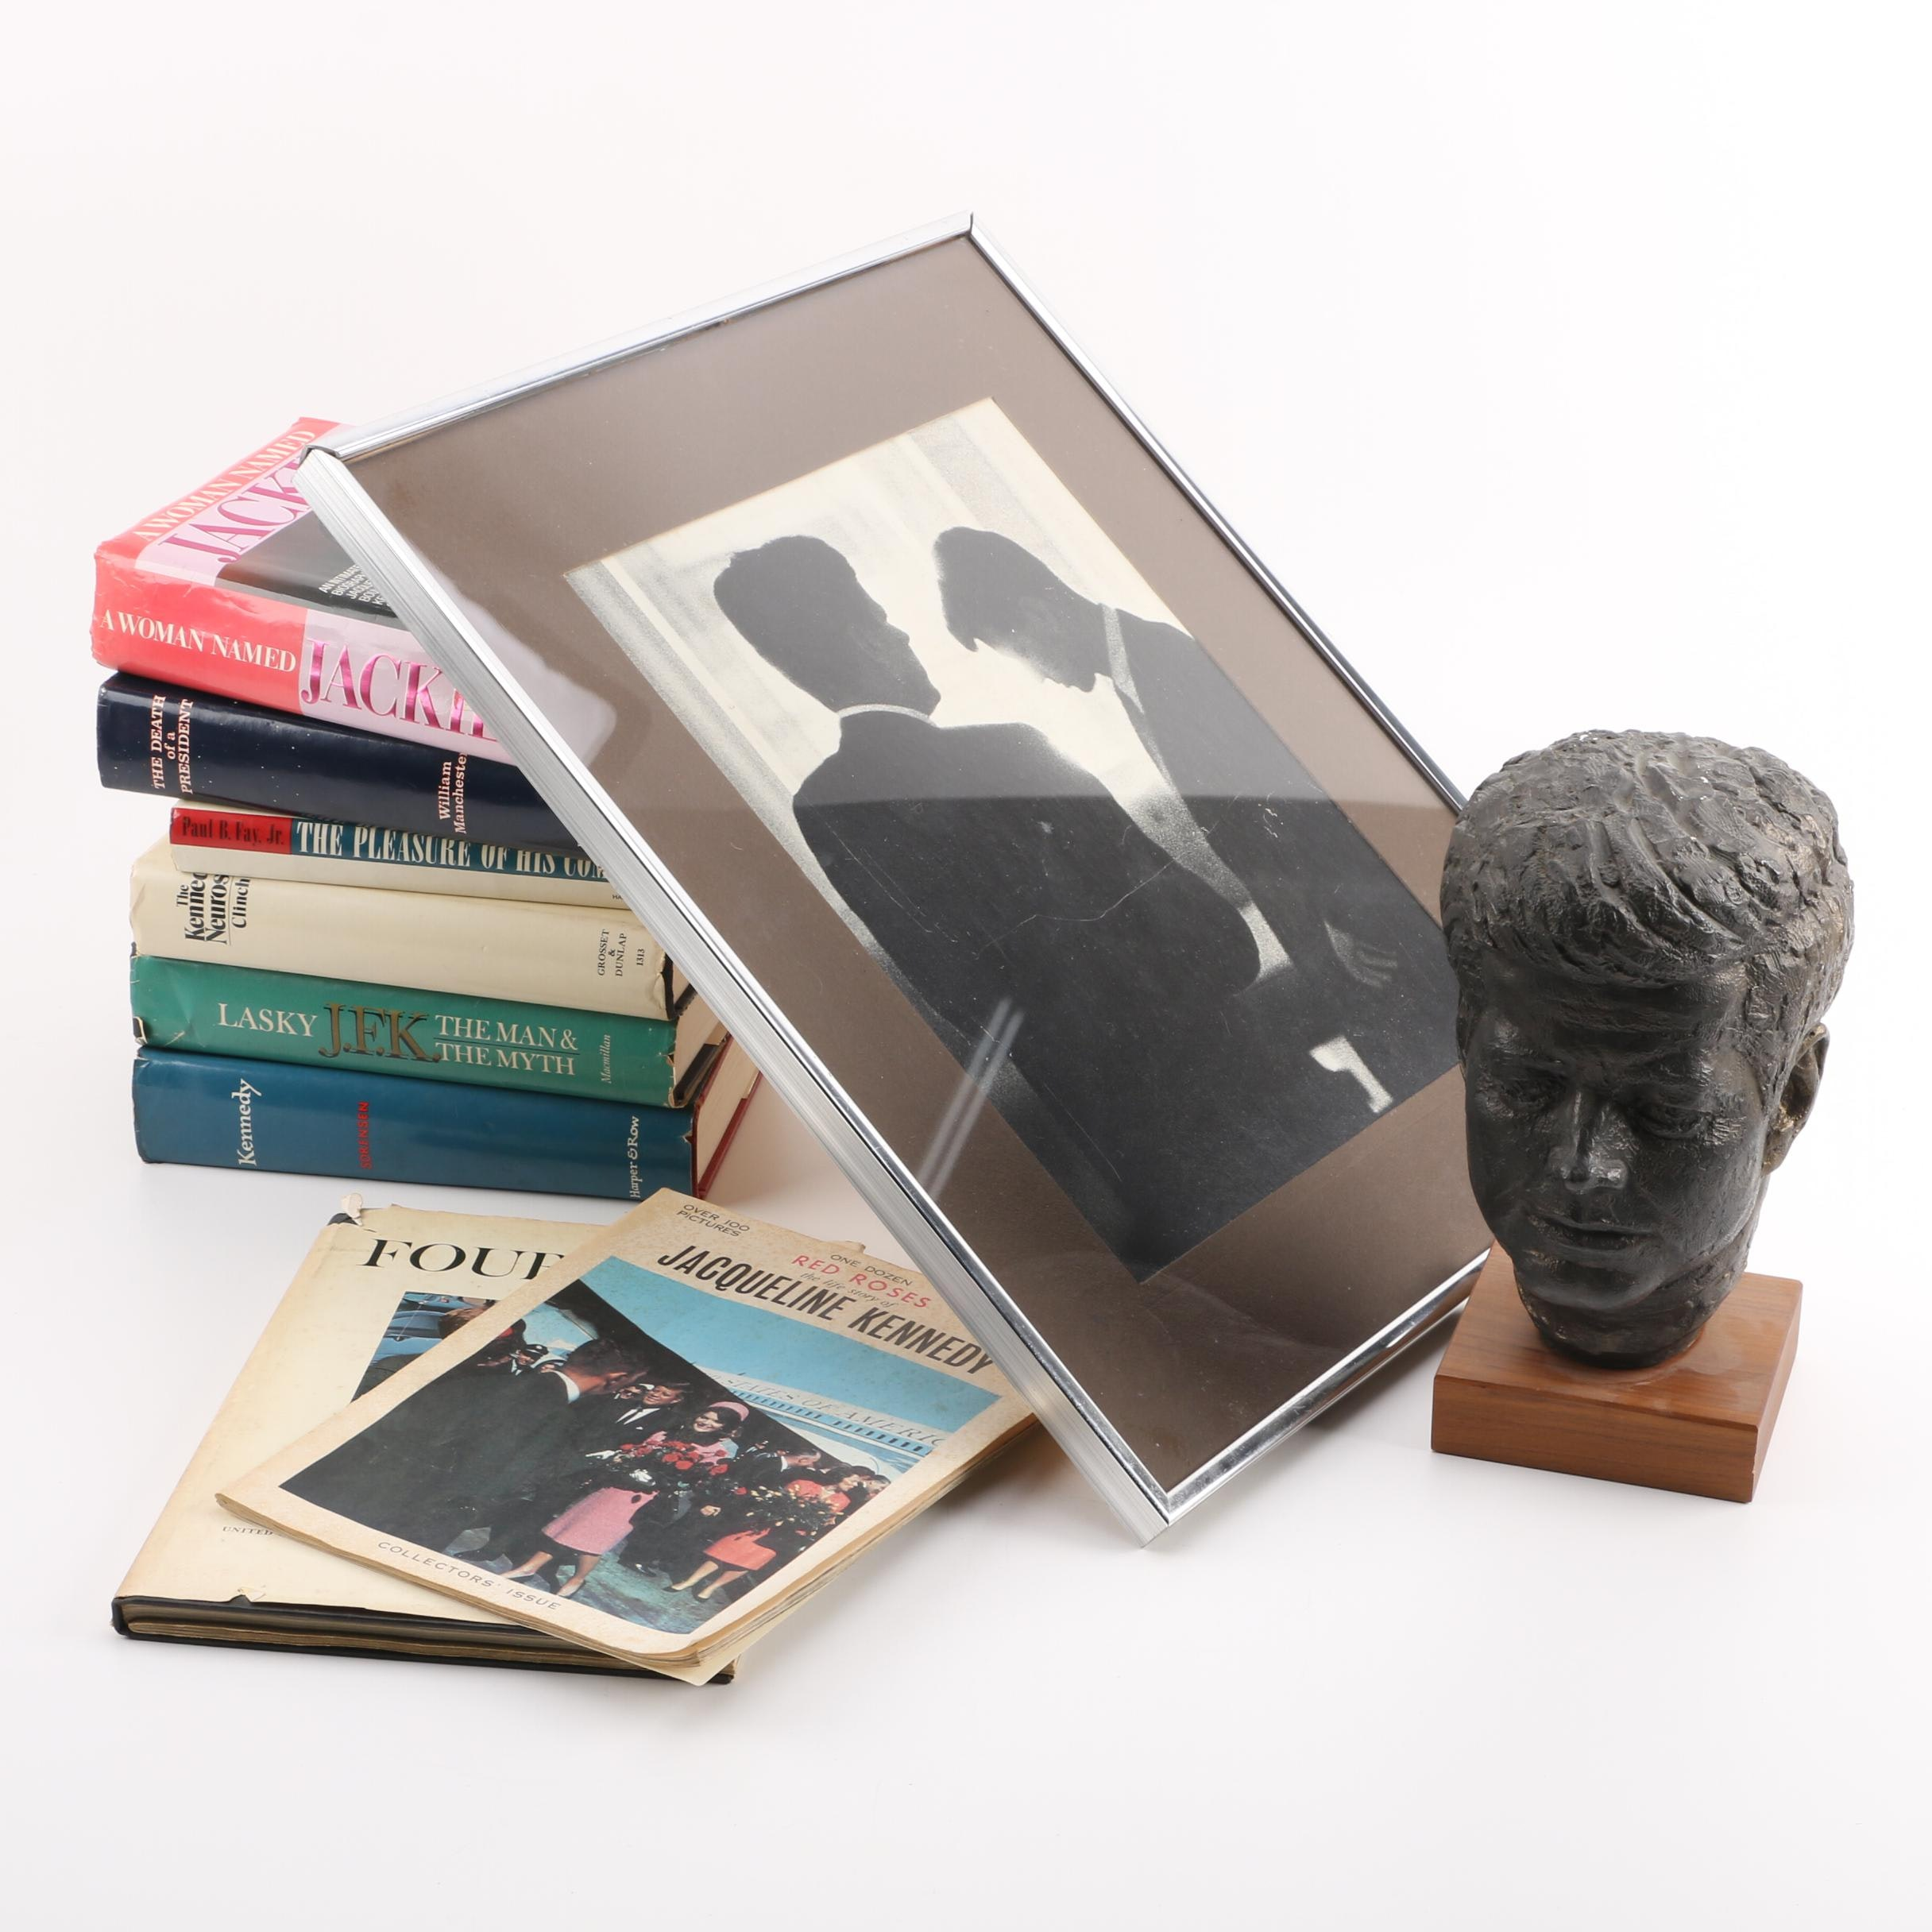 Books on John F. Kennedy and Ceramic Bust